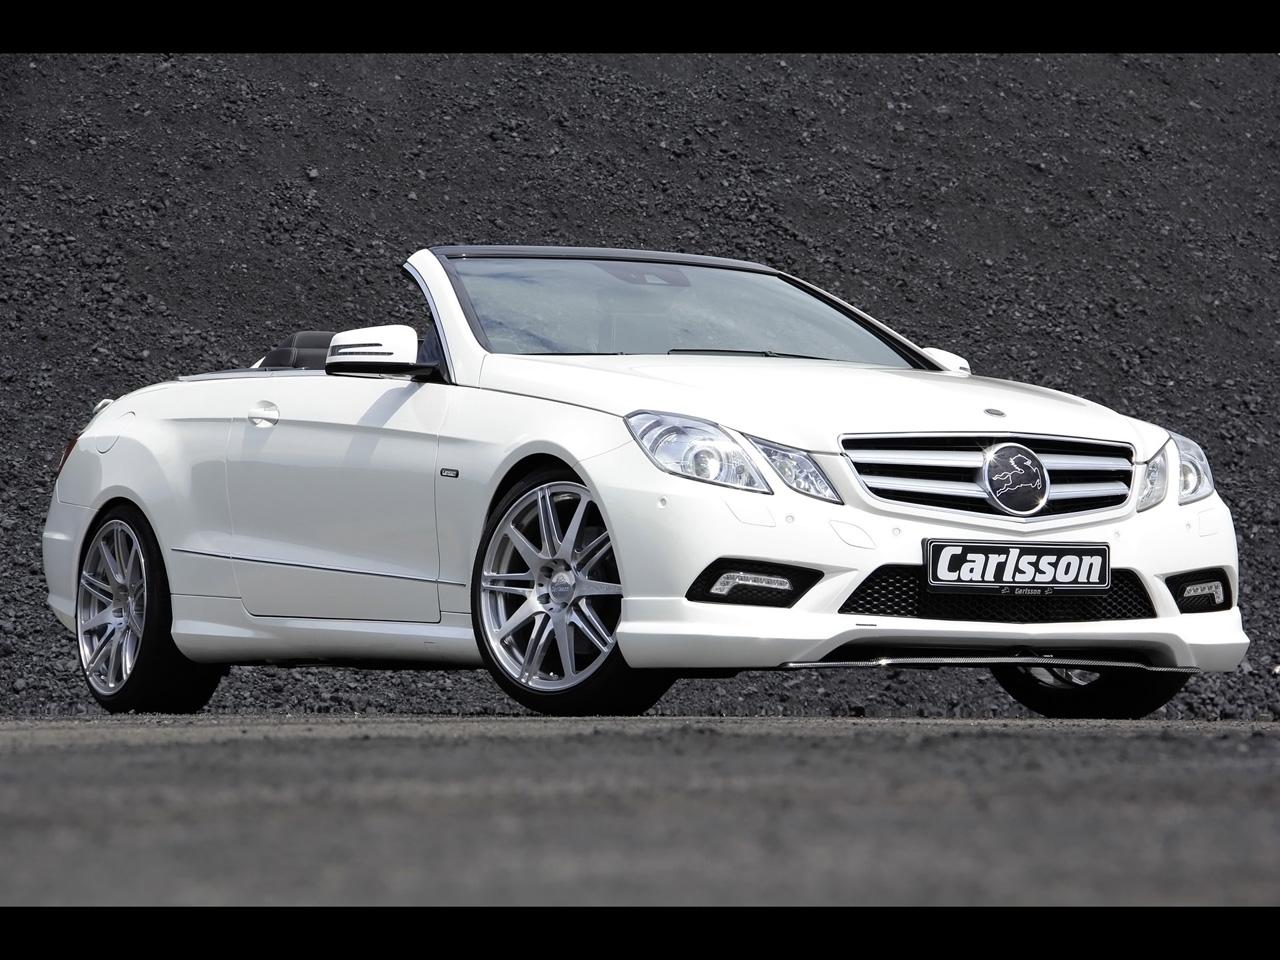 2011 carlsson mercedes benz e 350 cdi pictures beautiful cool cars wallpapers. Black Bedroom Furniture Sets. Home Design Ideas